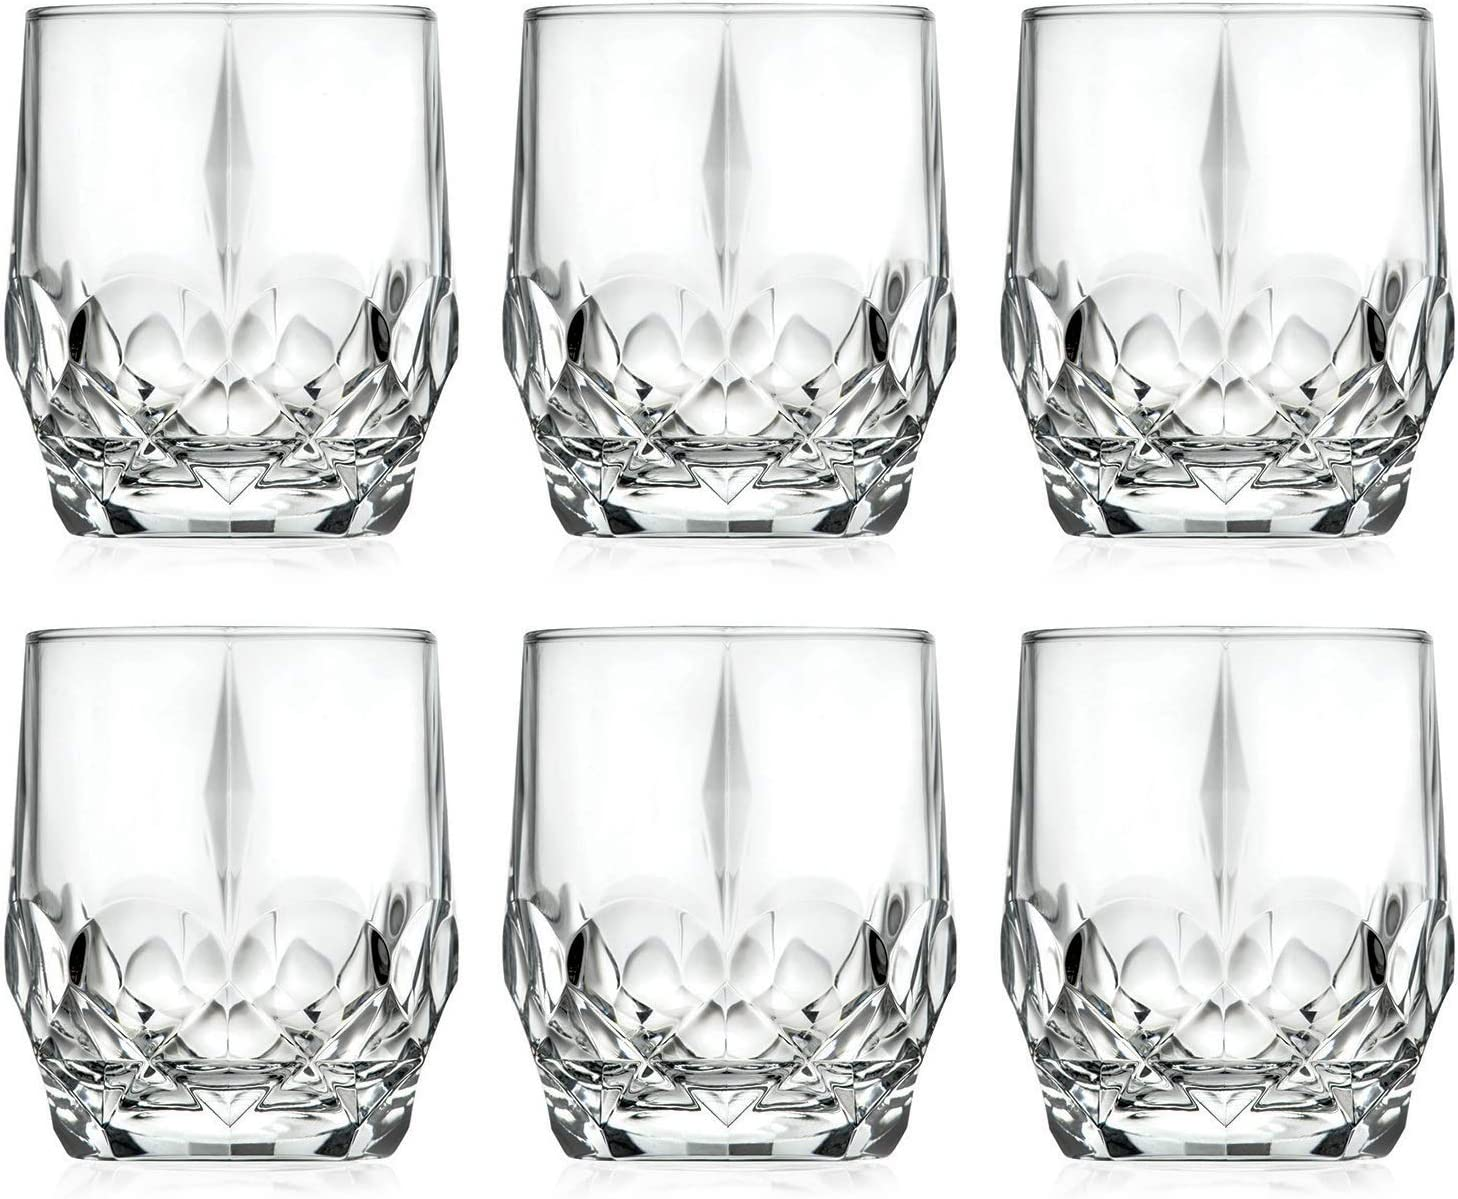 Tumbler Glass - Double Old Fashioned - Set of 6 Glasses - Designed DOF tumblers - For Whiskey - Bourbon - Water - Beverage - Drinking Glasses - 13 oz. Glass - Made in Europe By Barski